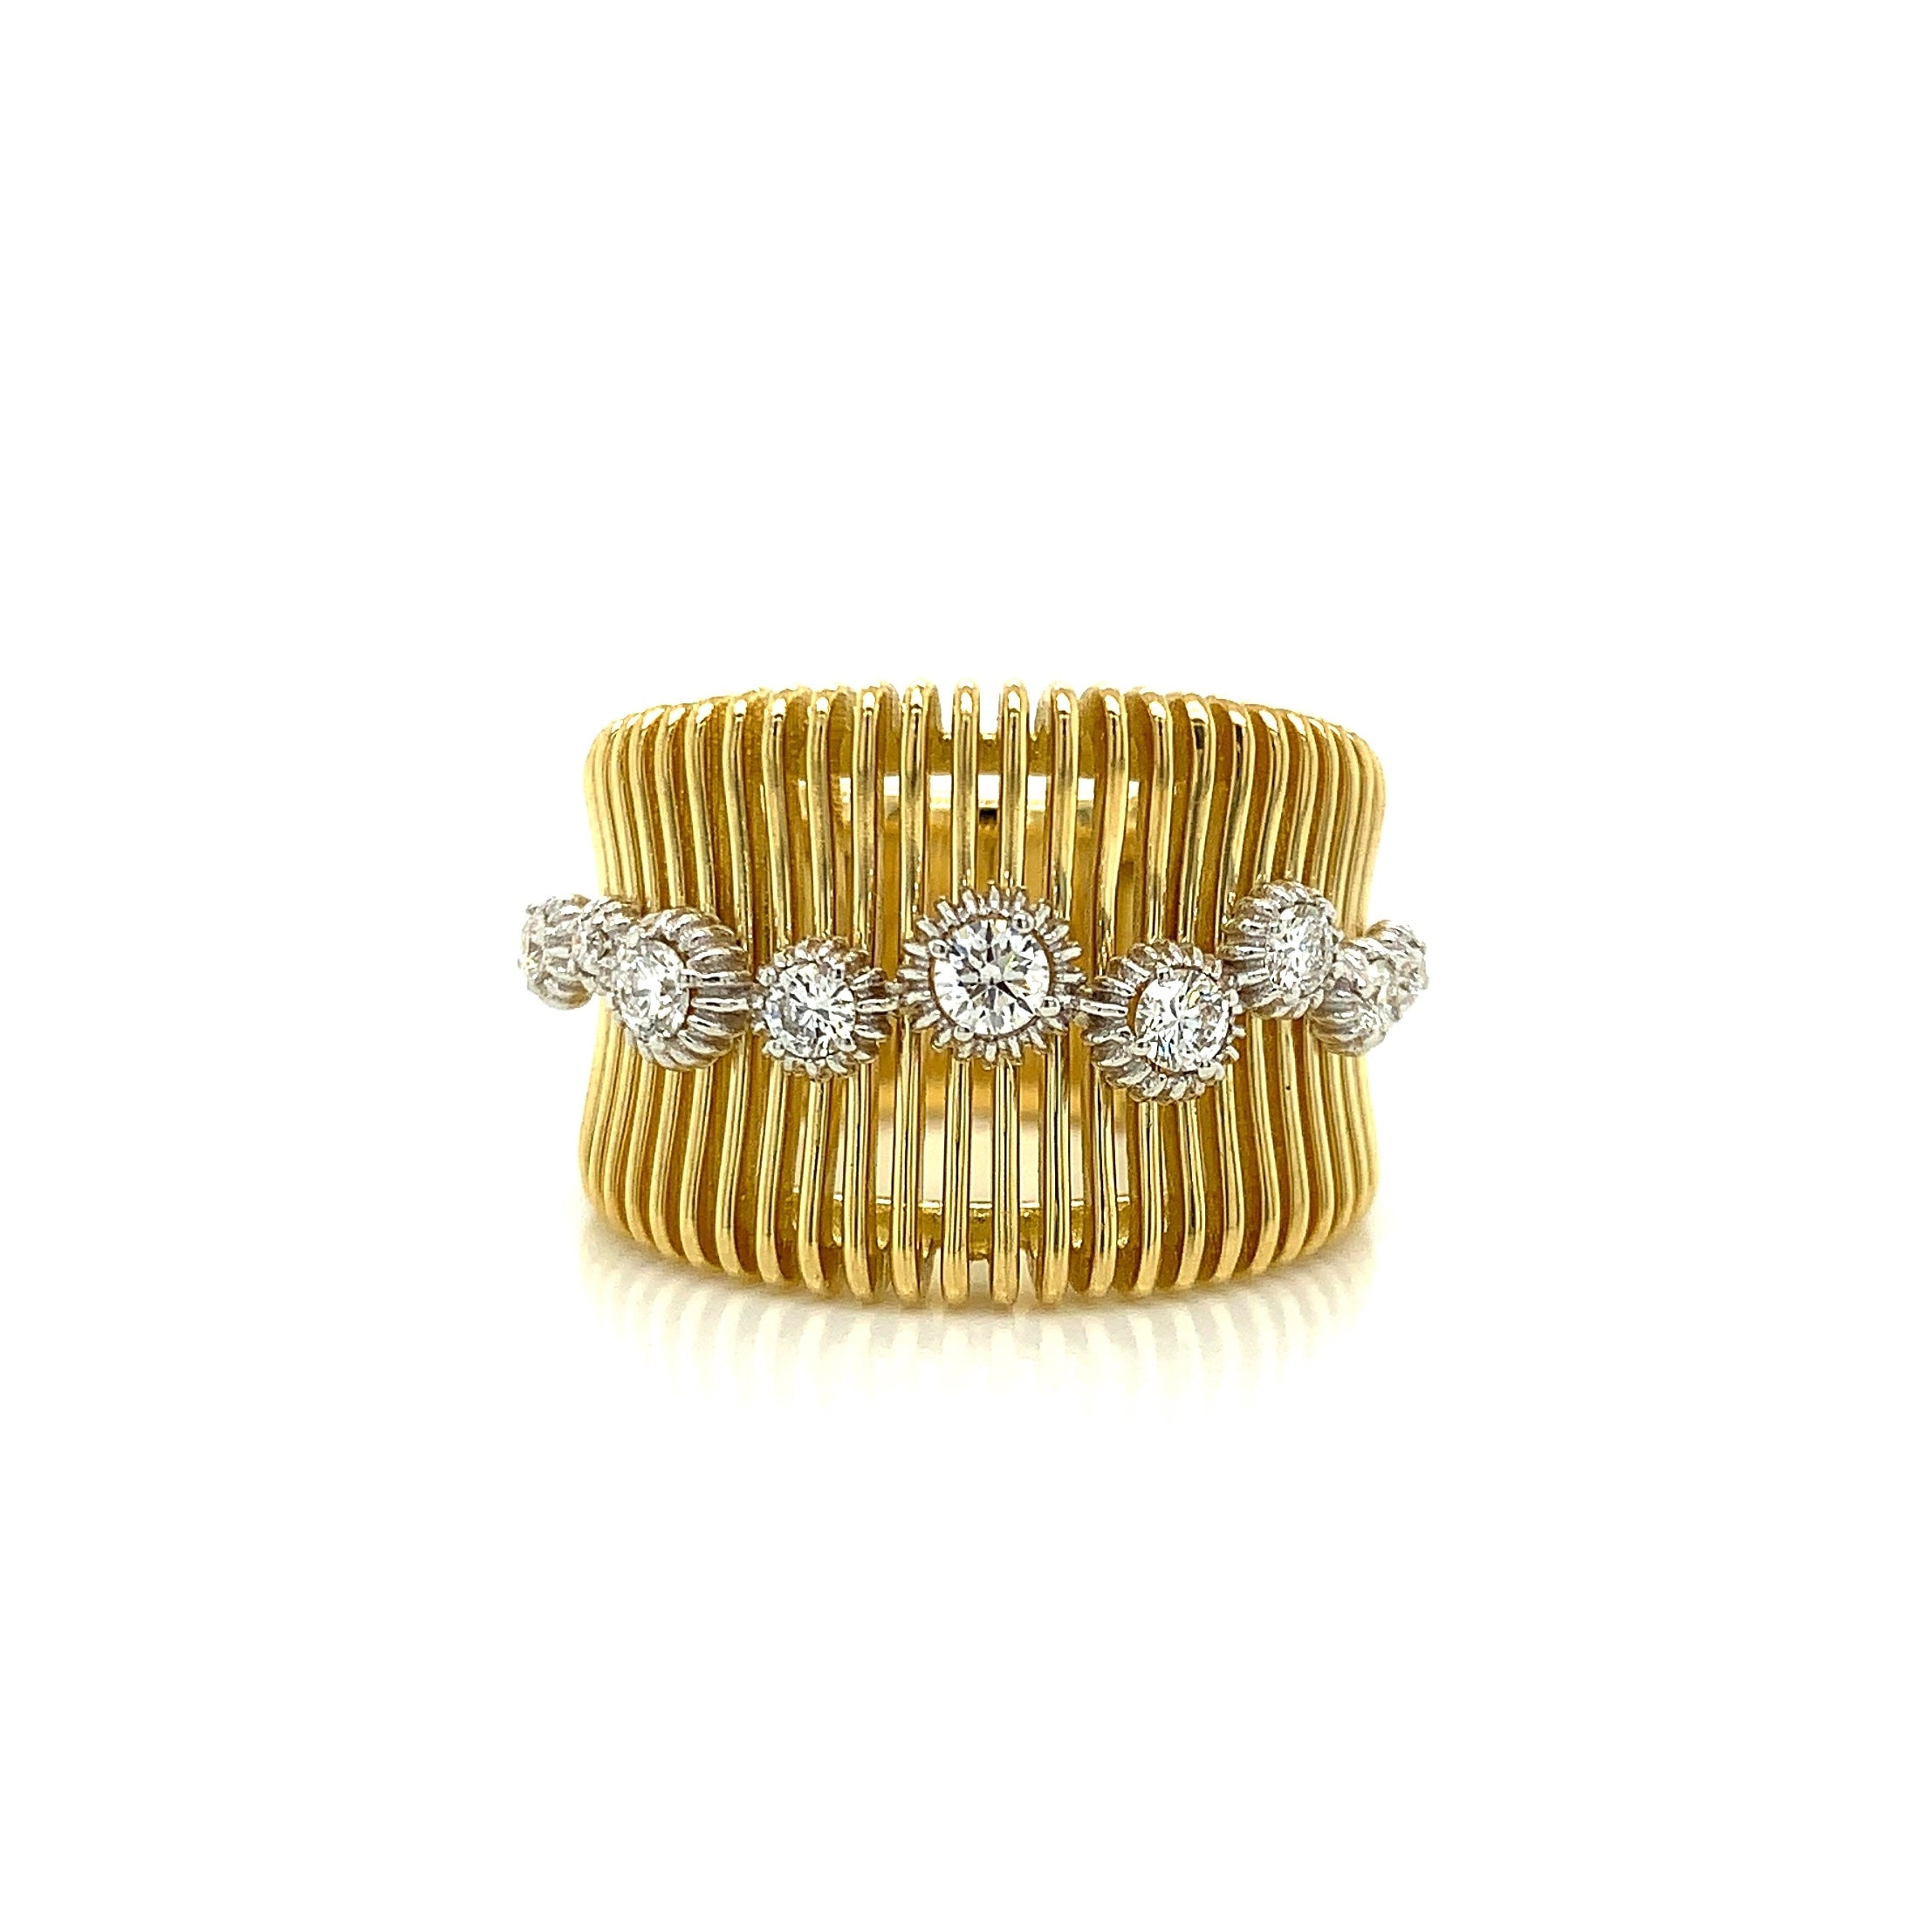 Wide Gold Ring with Diamond Accents